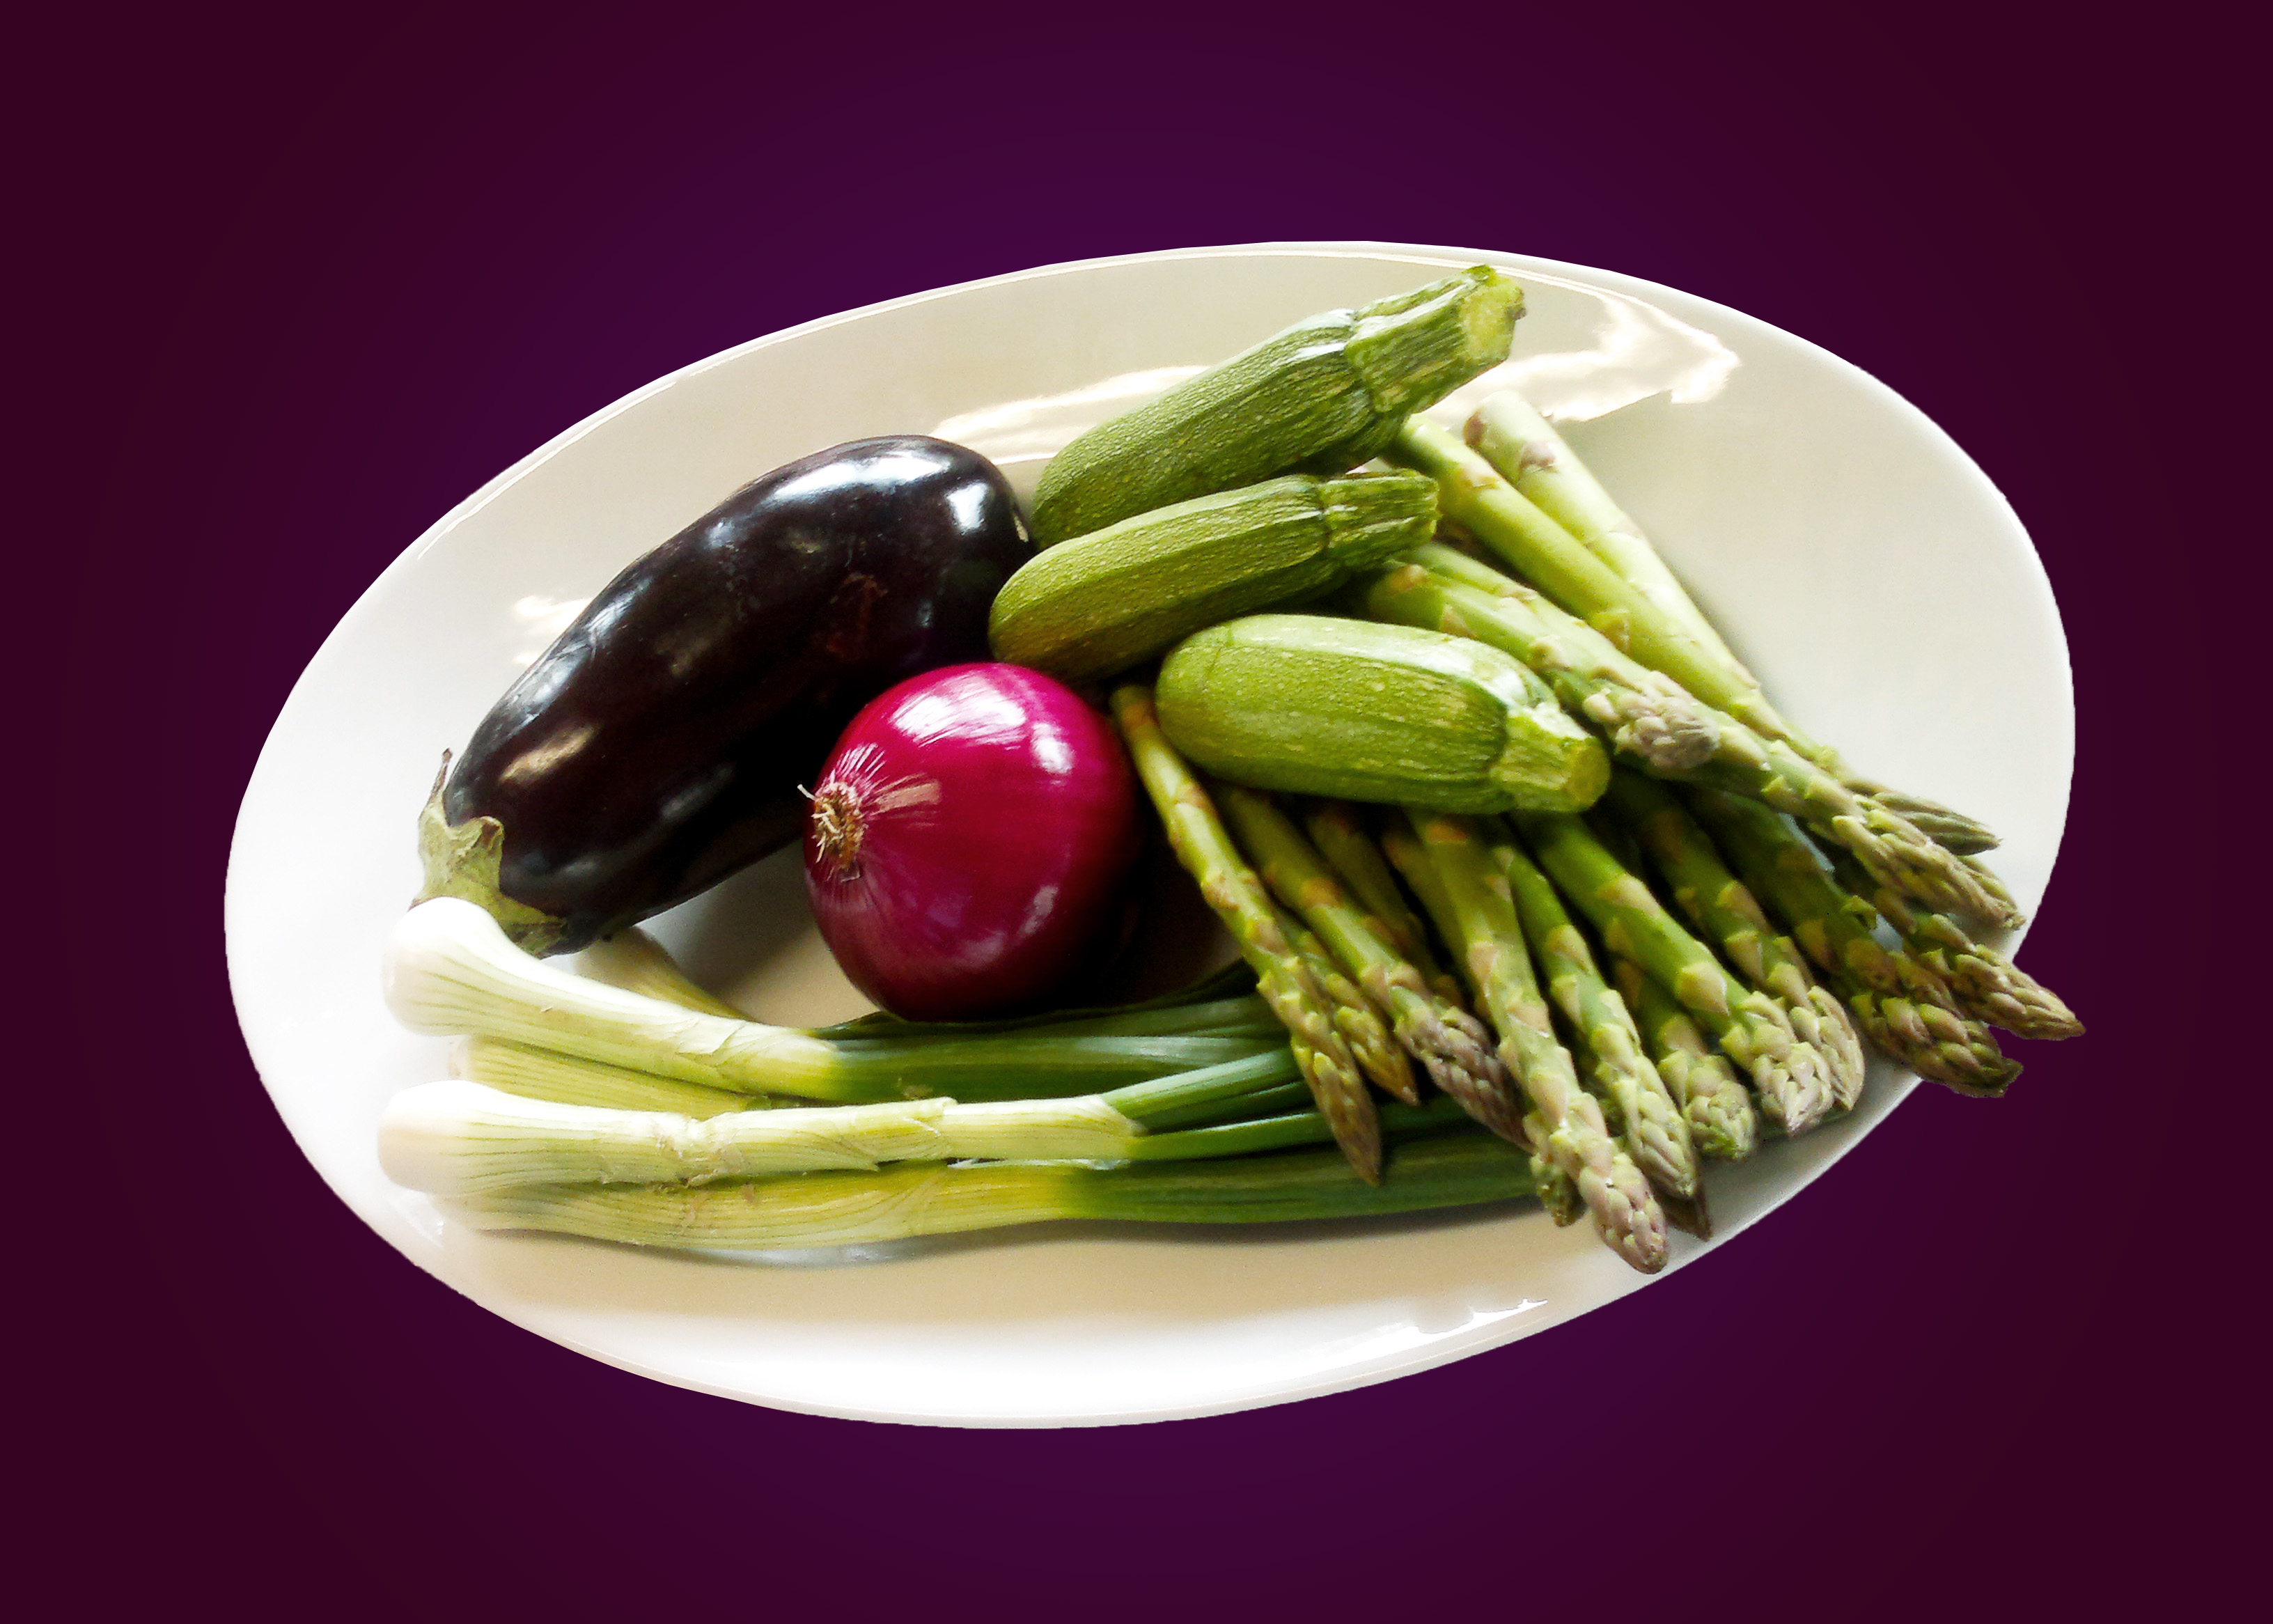 Vegetables on a dish photo